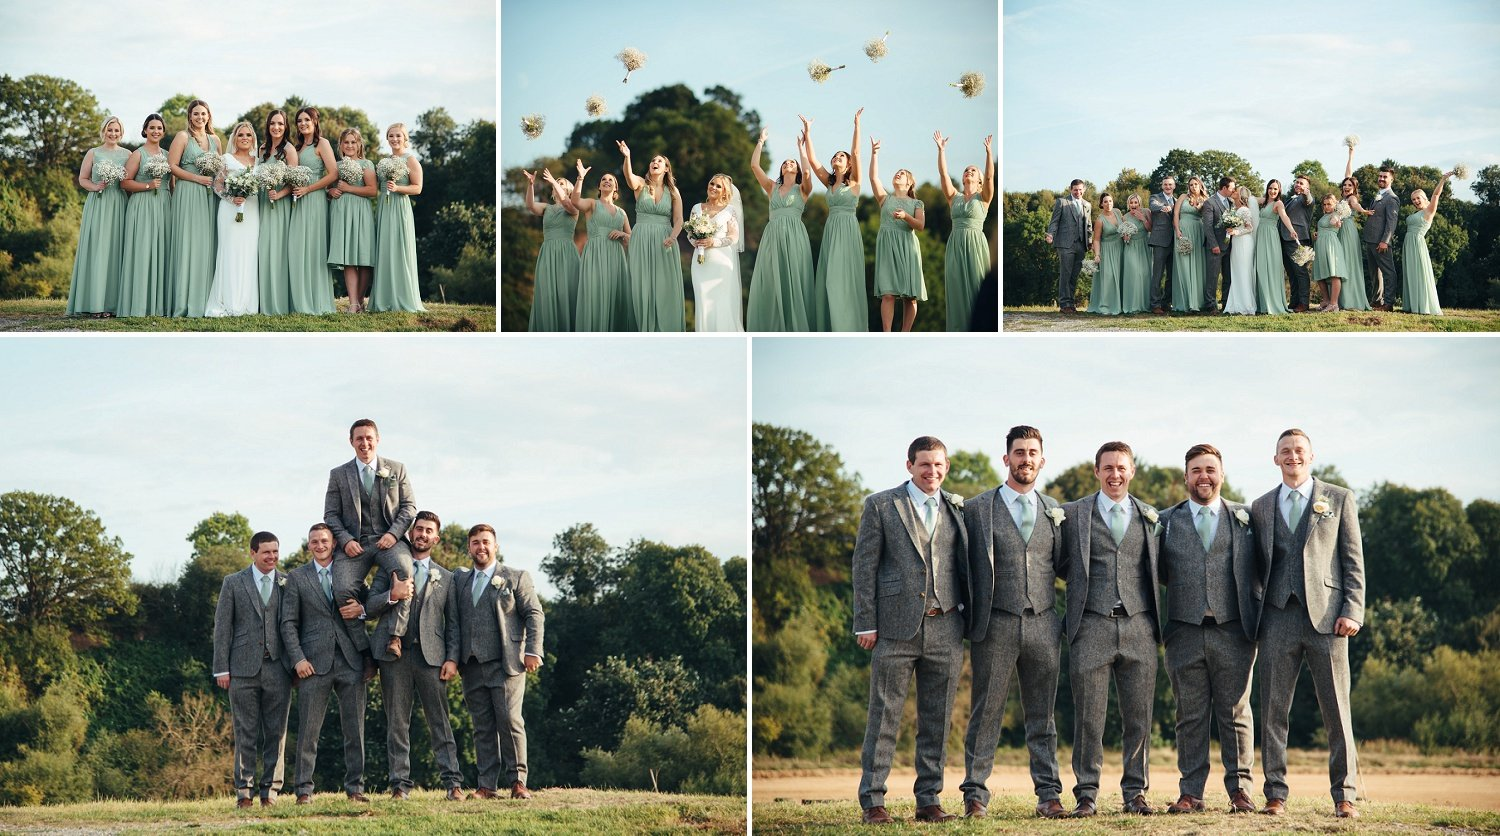 Outdoor formal photos of bride and groom with their bridesmaids and groomsmen